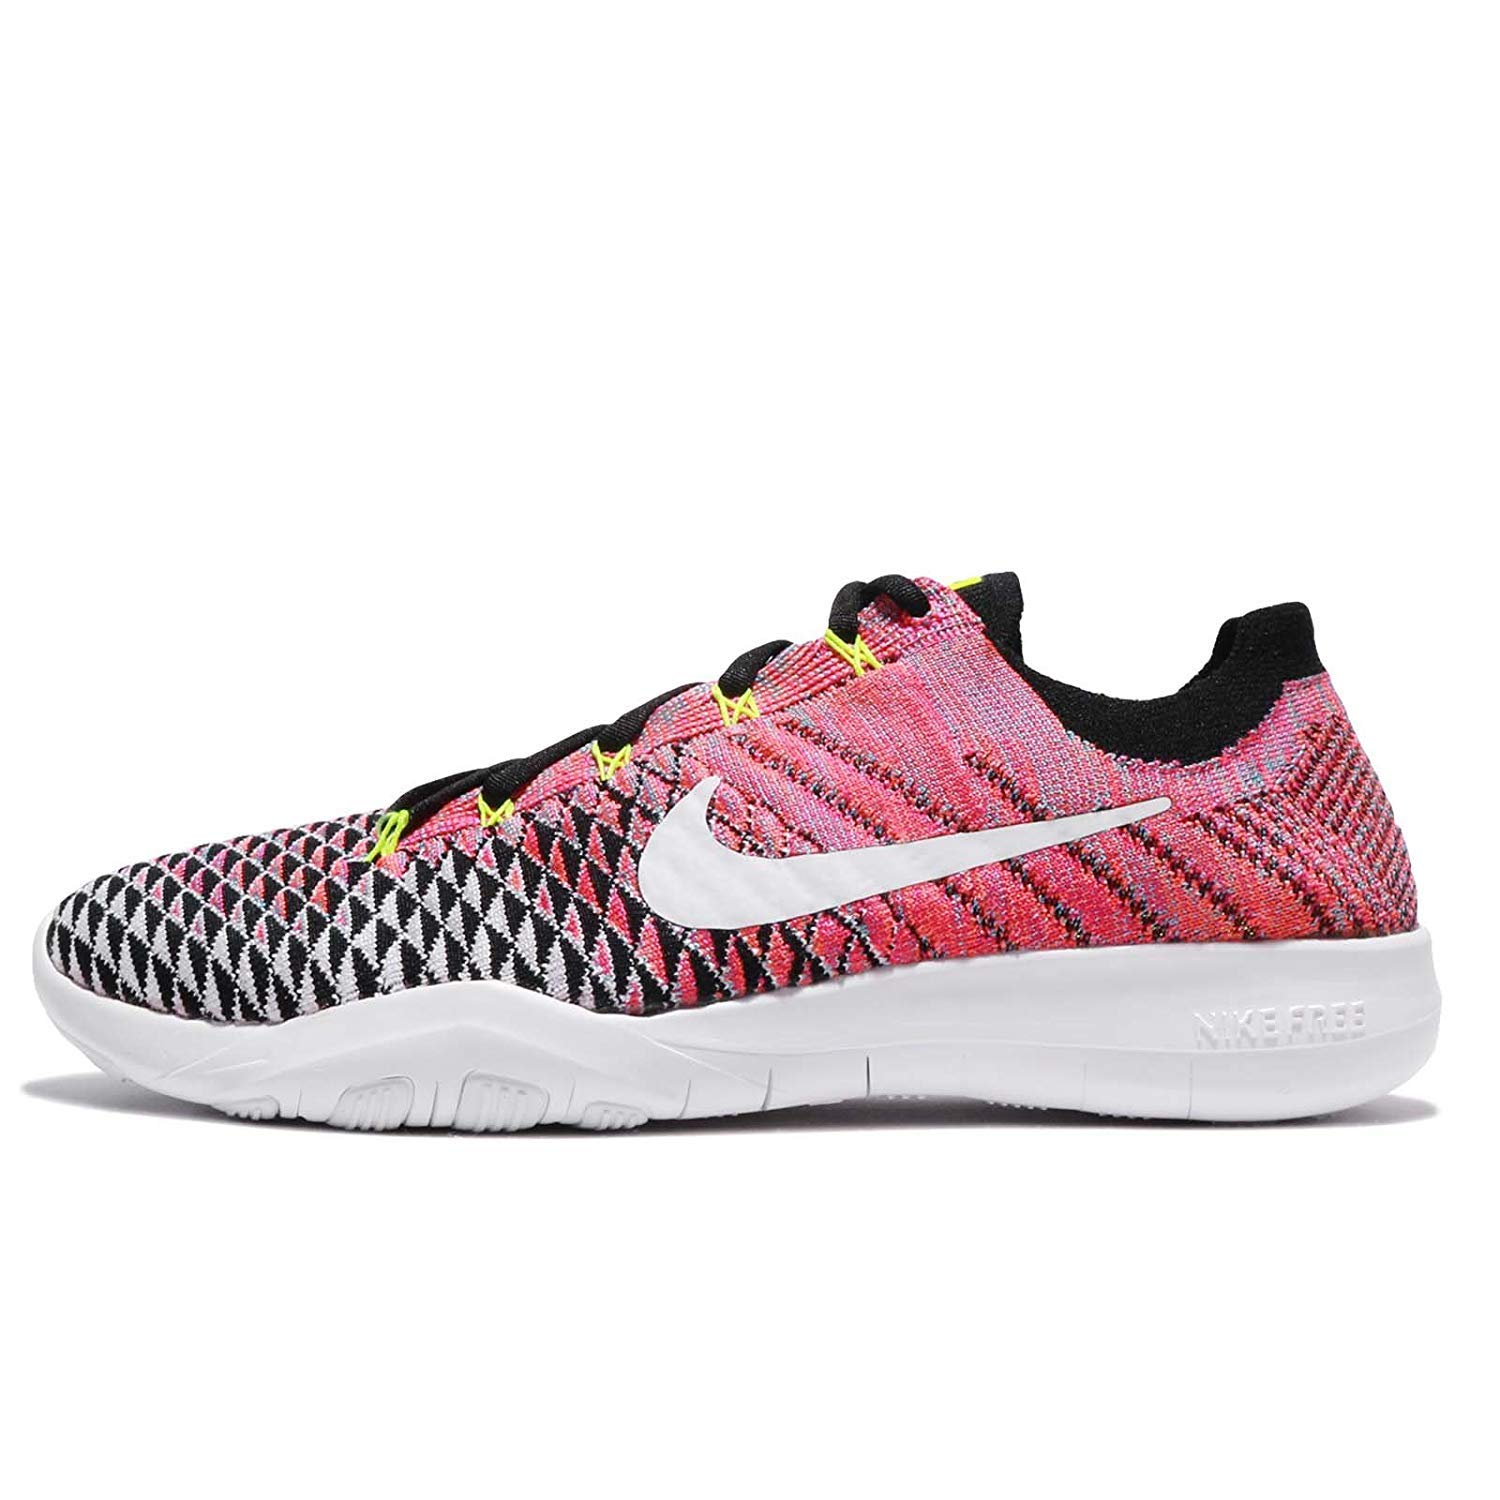 Shop Nike Womens free tr flyknit 2 Fabric Low Top Lace Up